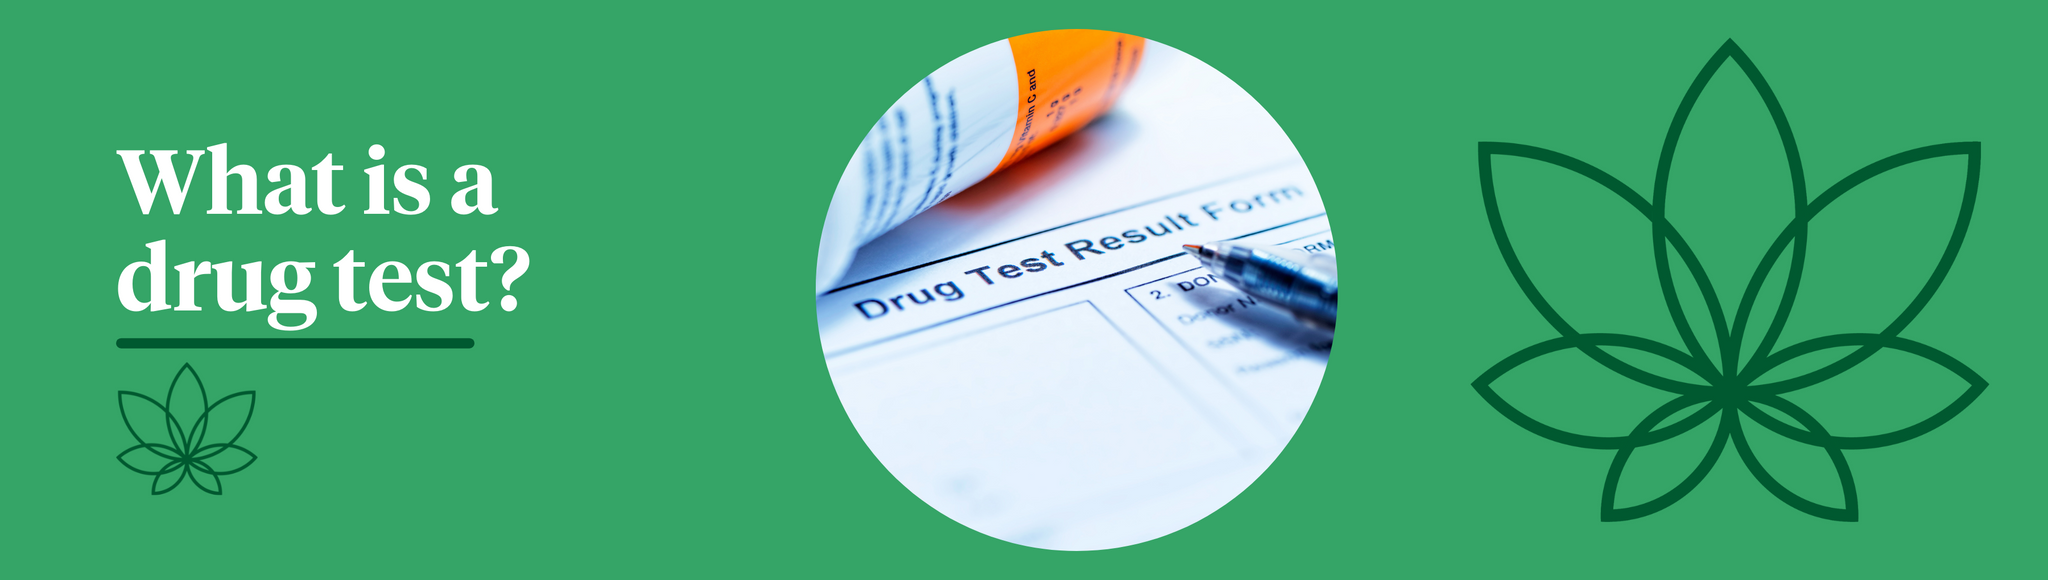 A green background with the Supreme CBD logo to the right alongside a drug test form in the centre of the image to demonstrate what is a drug test?